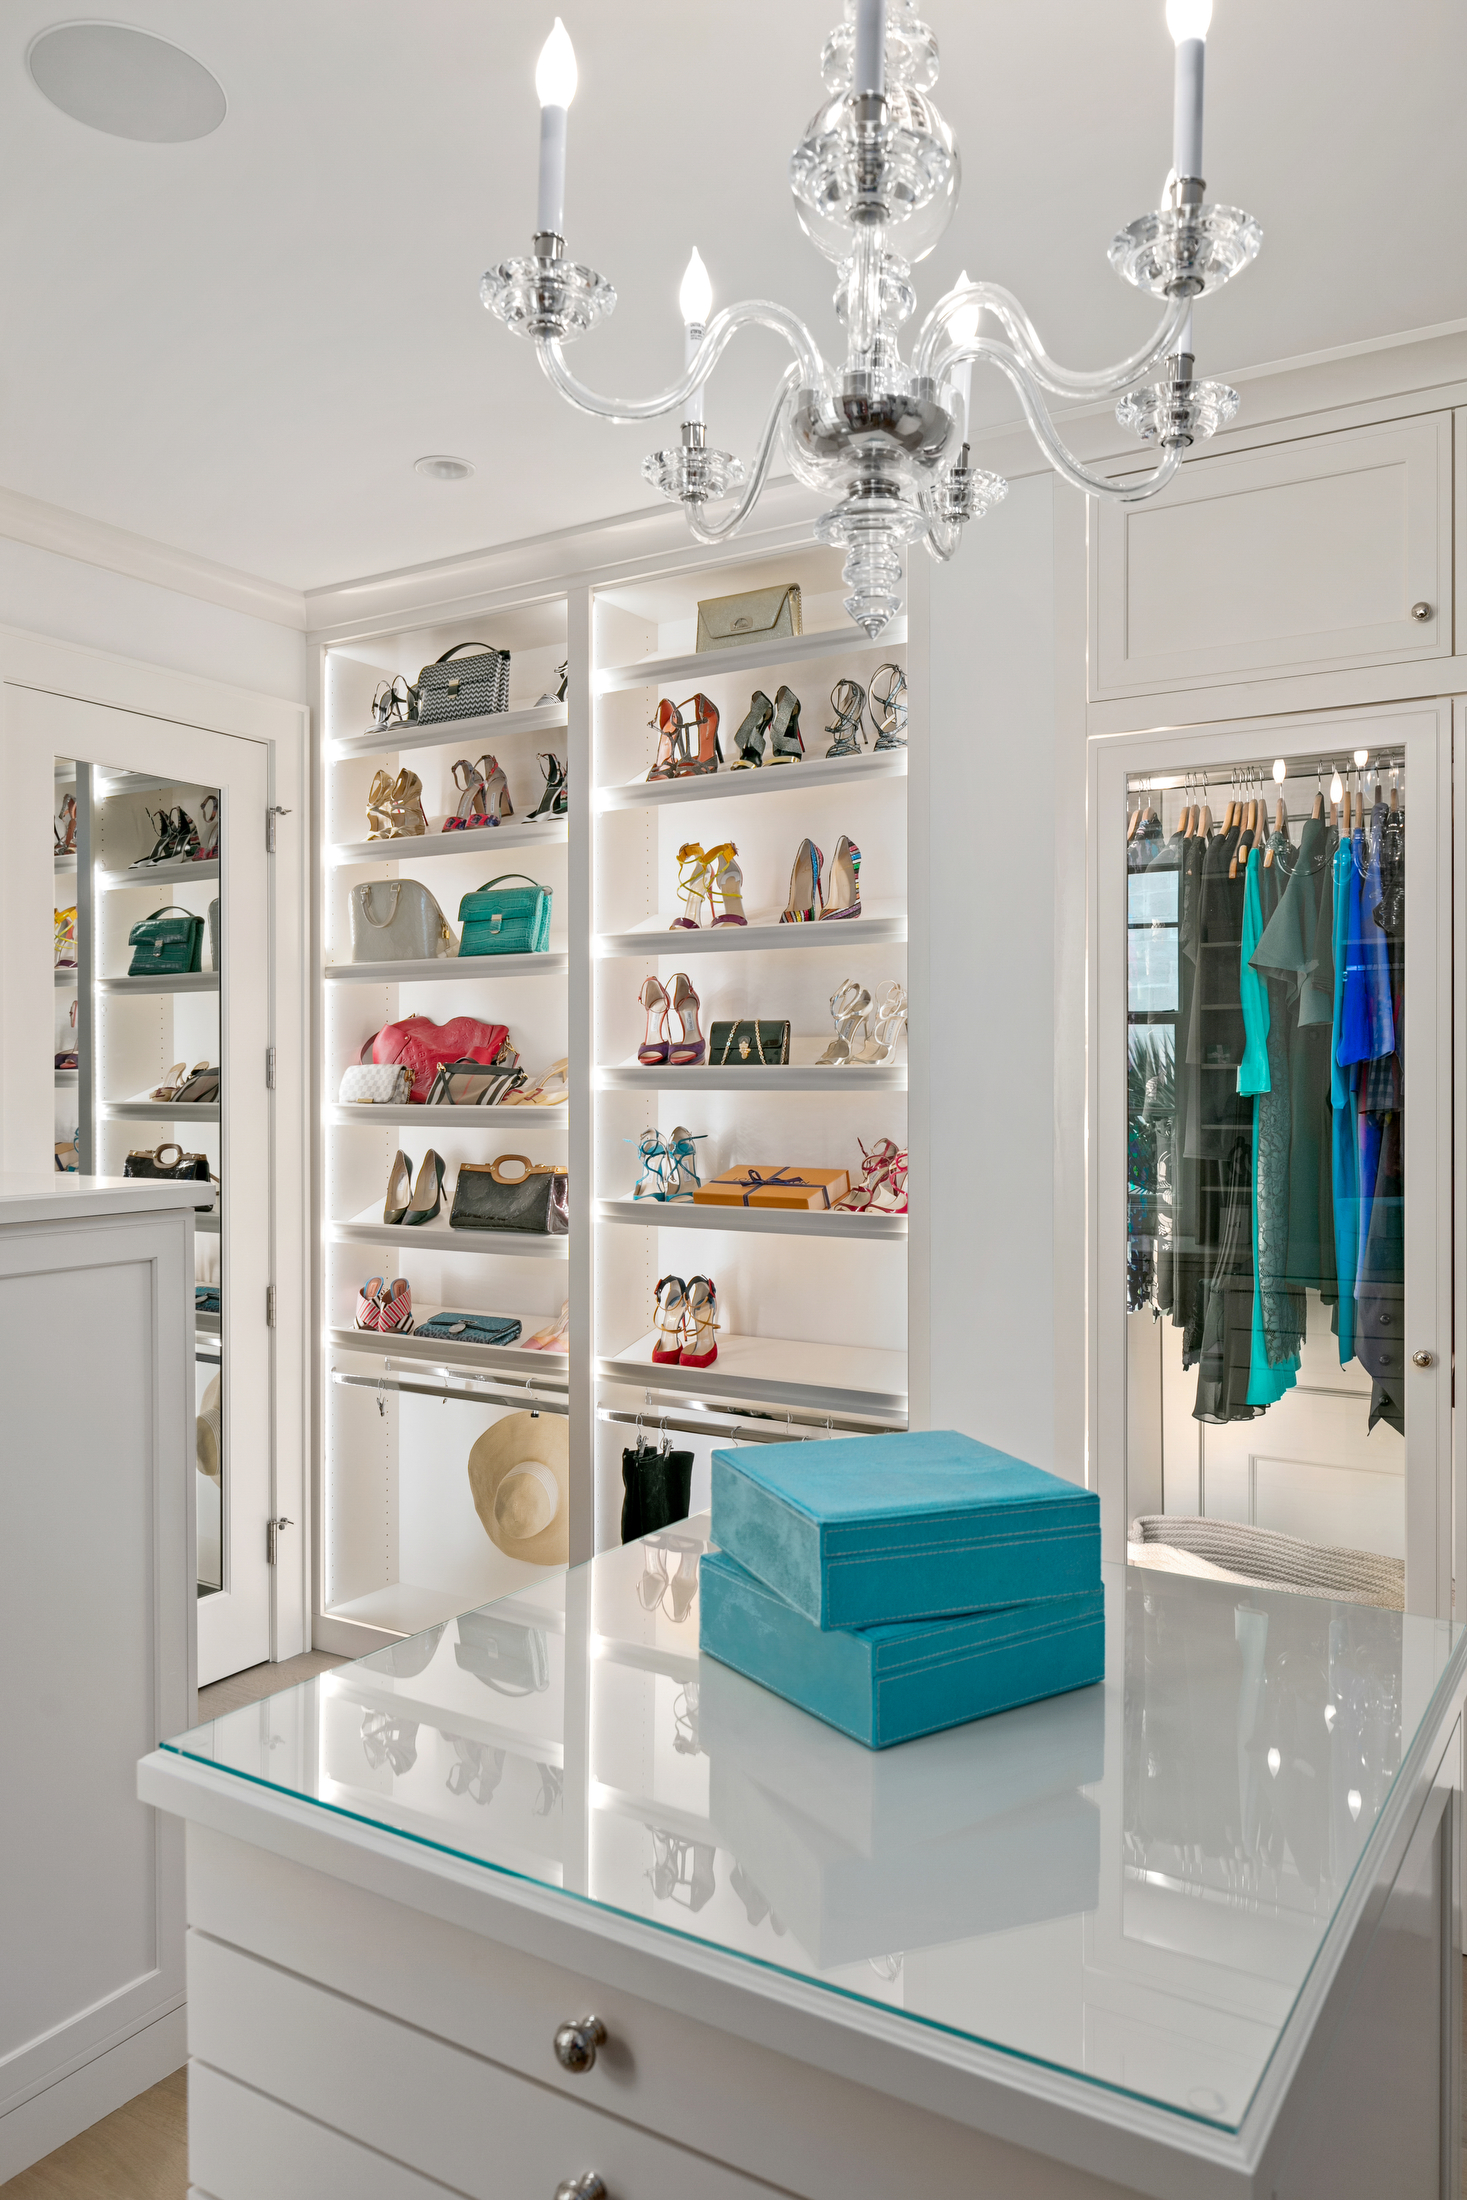 Luxury walk-in closet with chandelier